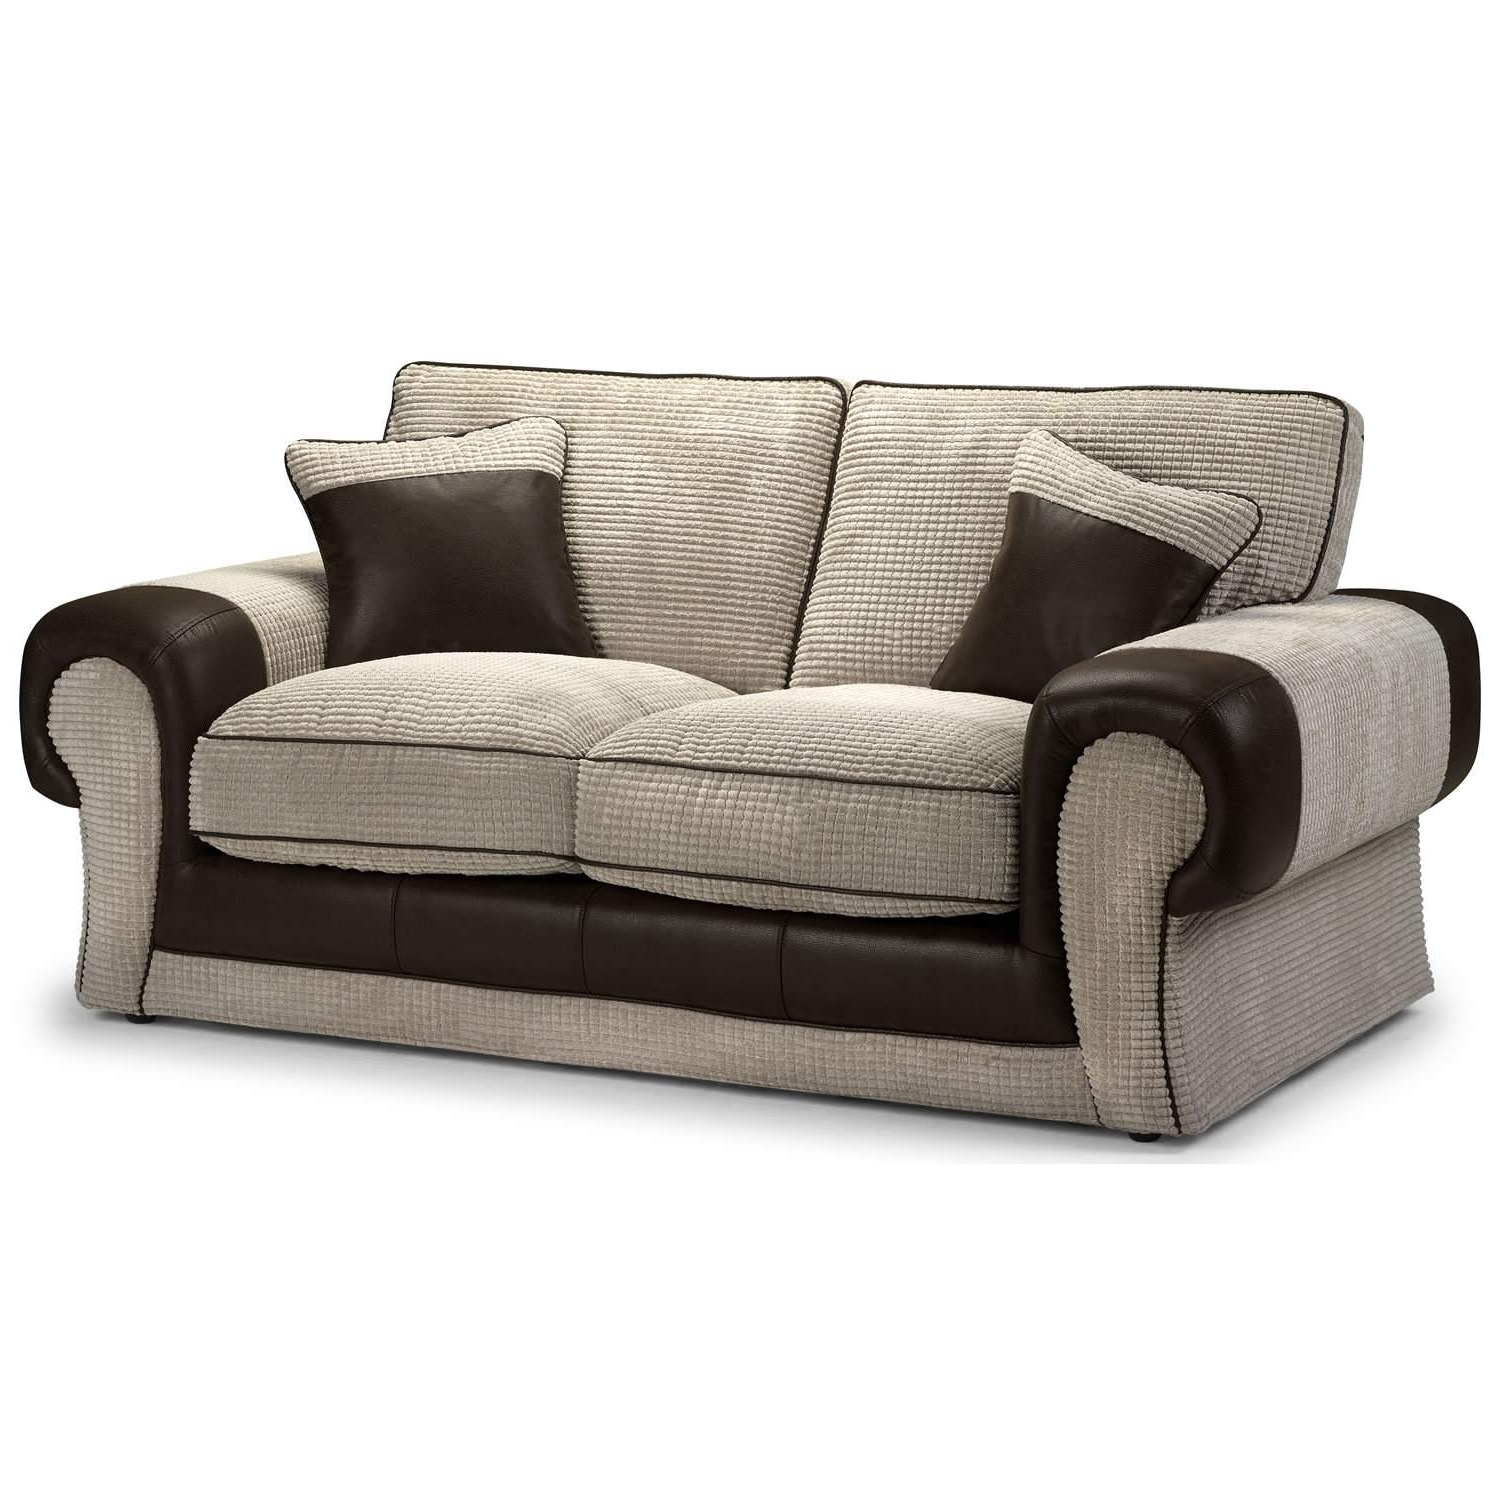 Preferred Tangent 2 Seater Sofa – Next Day Delivery Tangent 2 Seater Sofa Intended For 2 Seater Sofas (View 10 of 15)